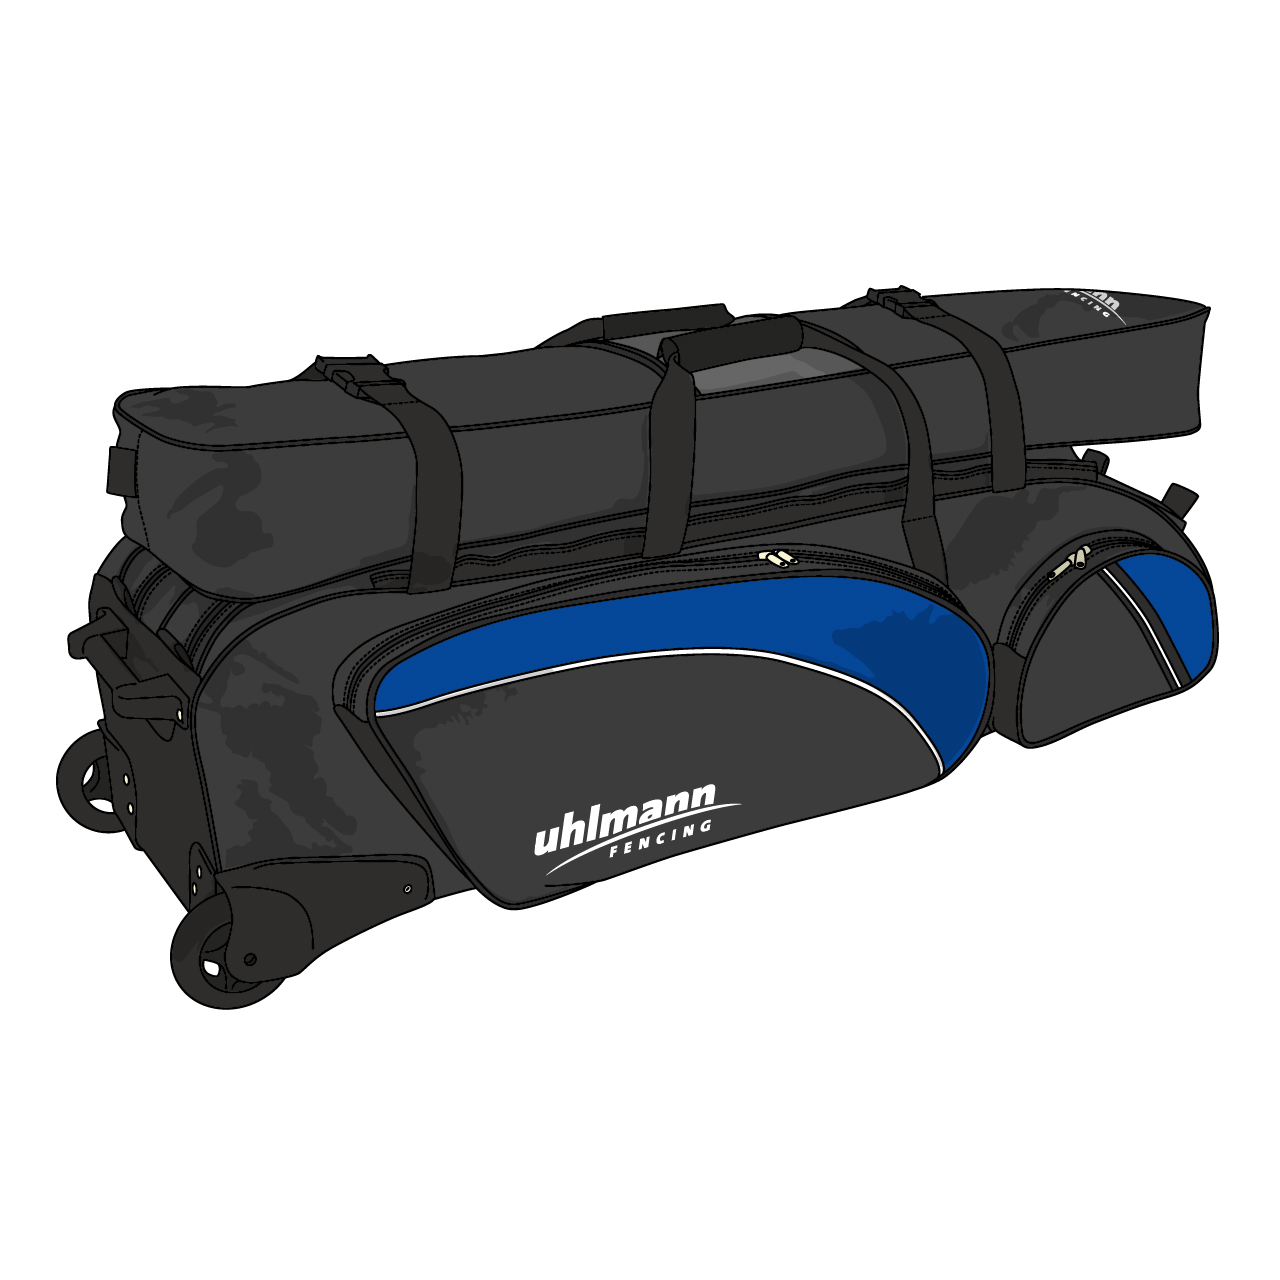 """rollbag """"Jumbo Special"""", 2 main partitions, 3 outside pockets, 1 high-top bag"""